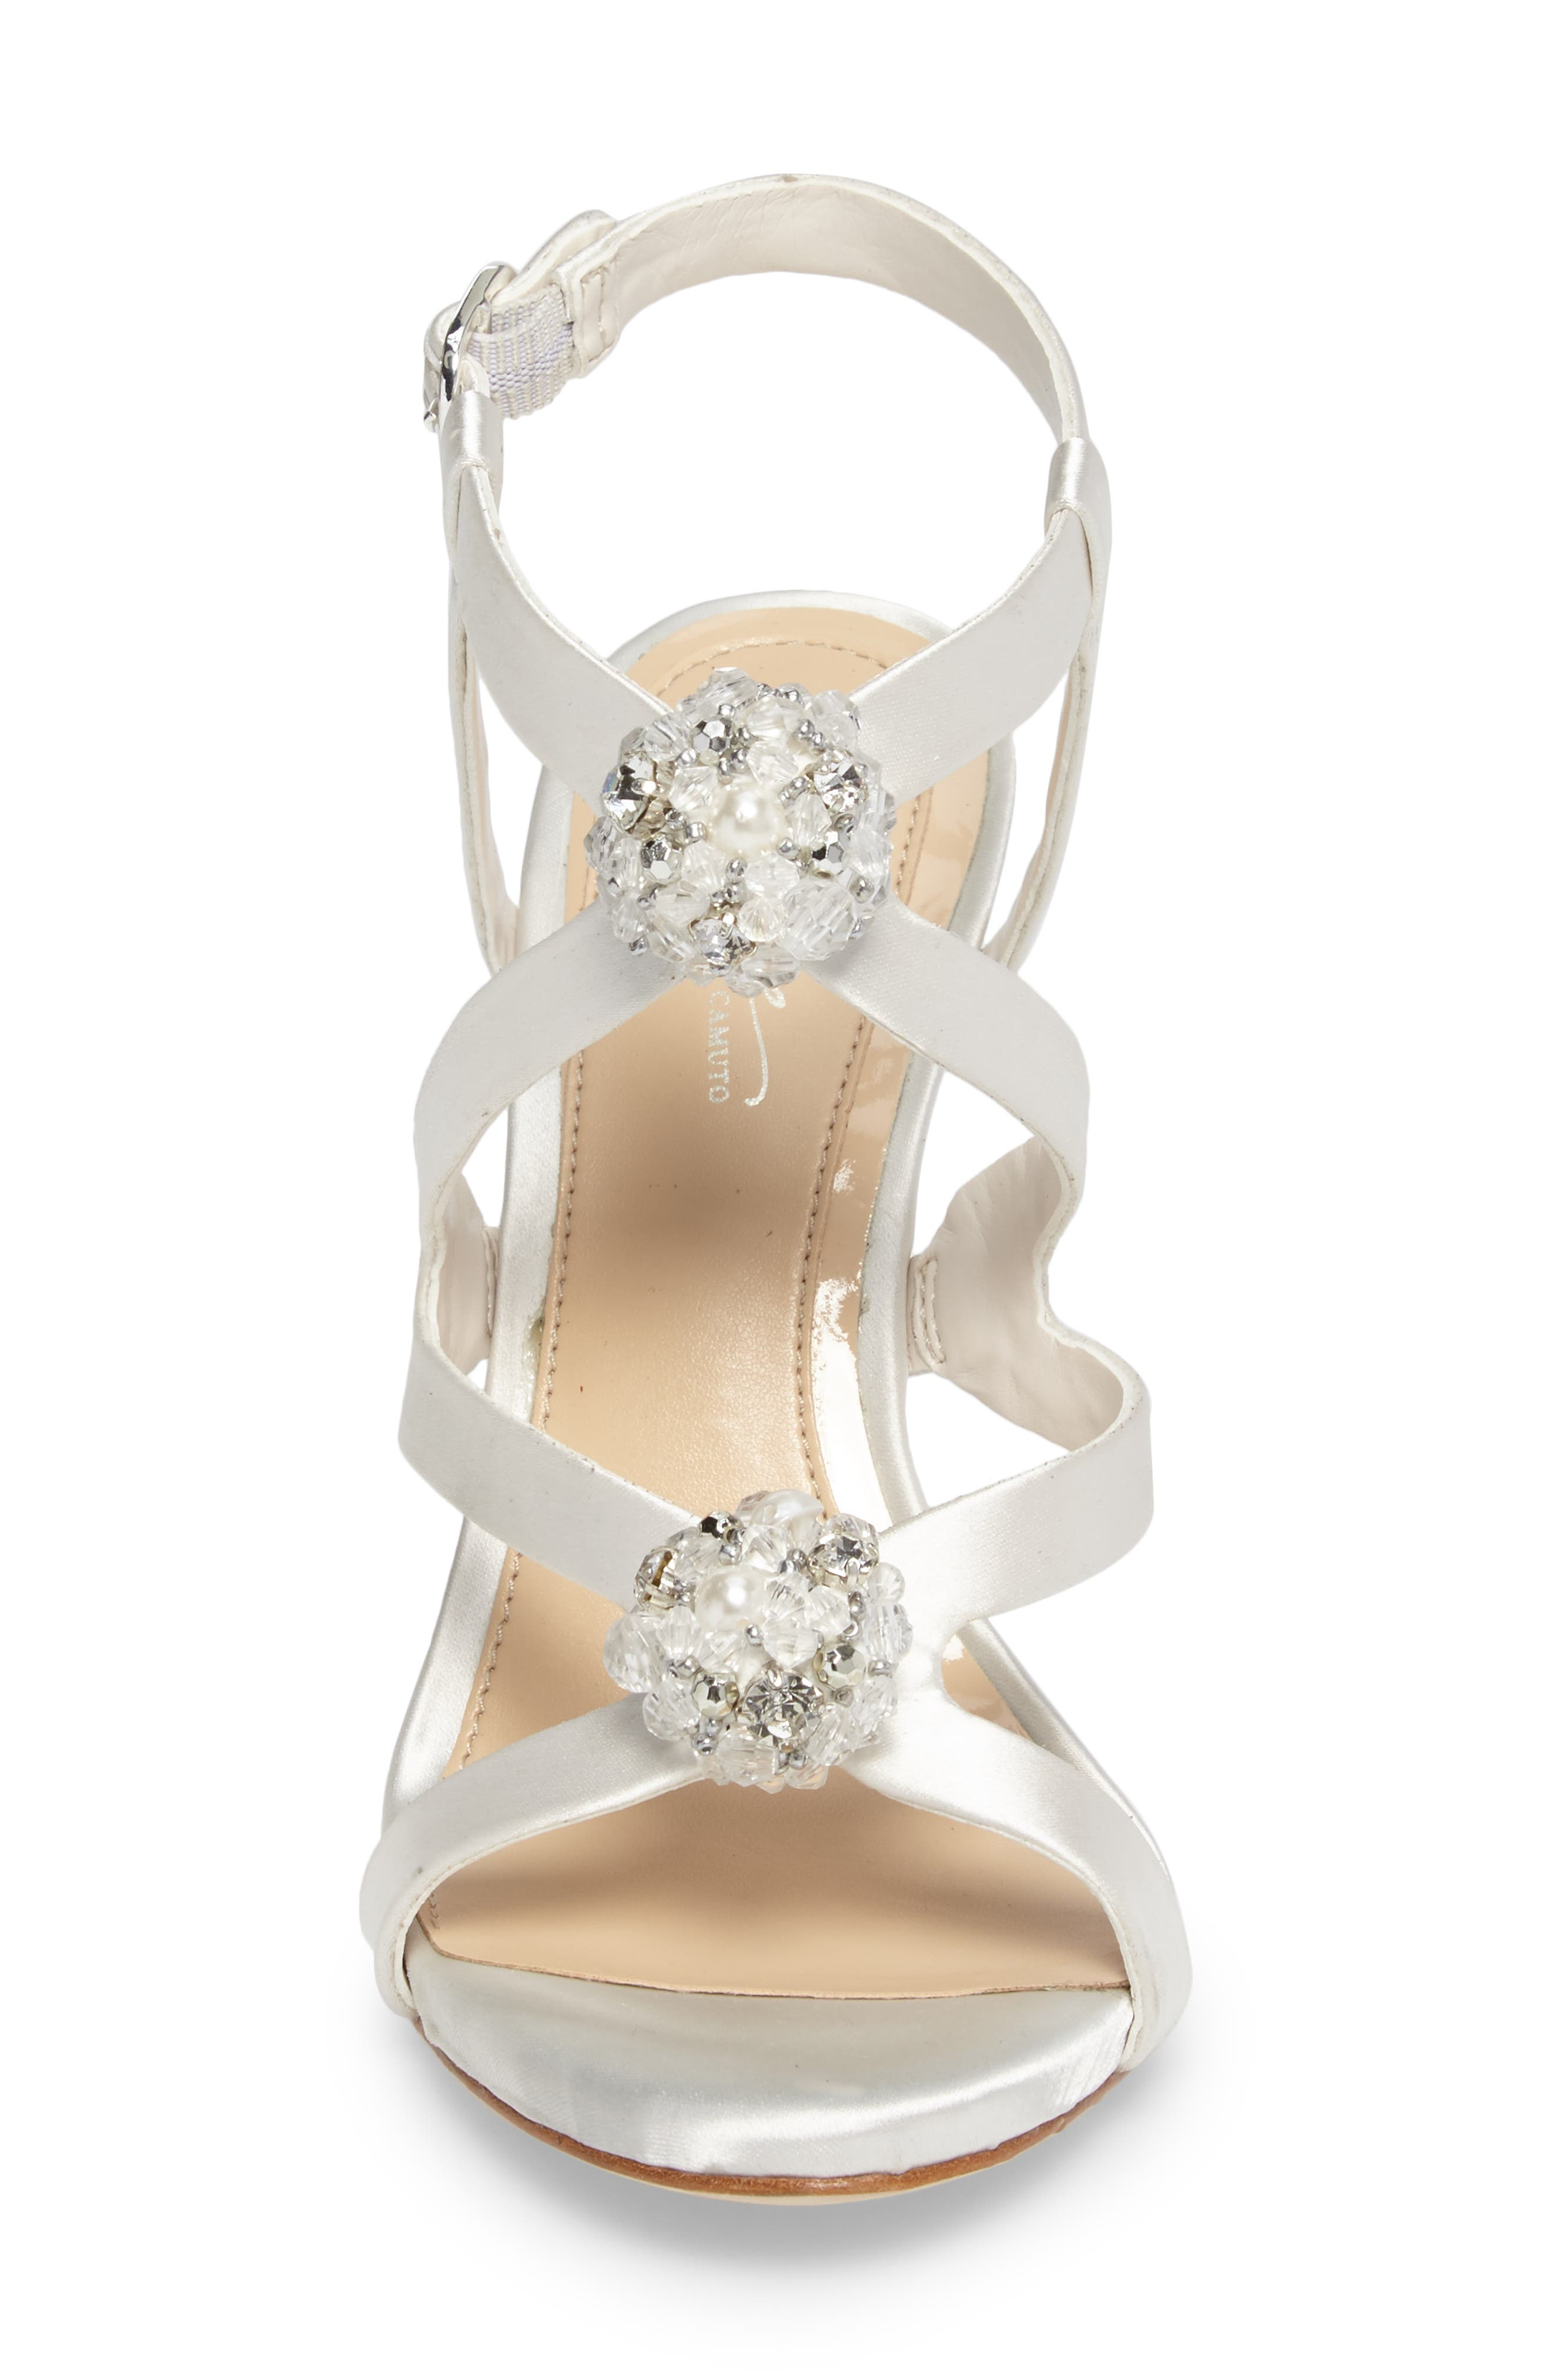 Daija Sandal,                             Alternate thumbnail 4, color,                             Ivory Satin